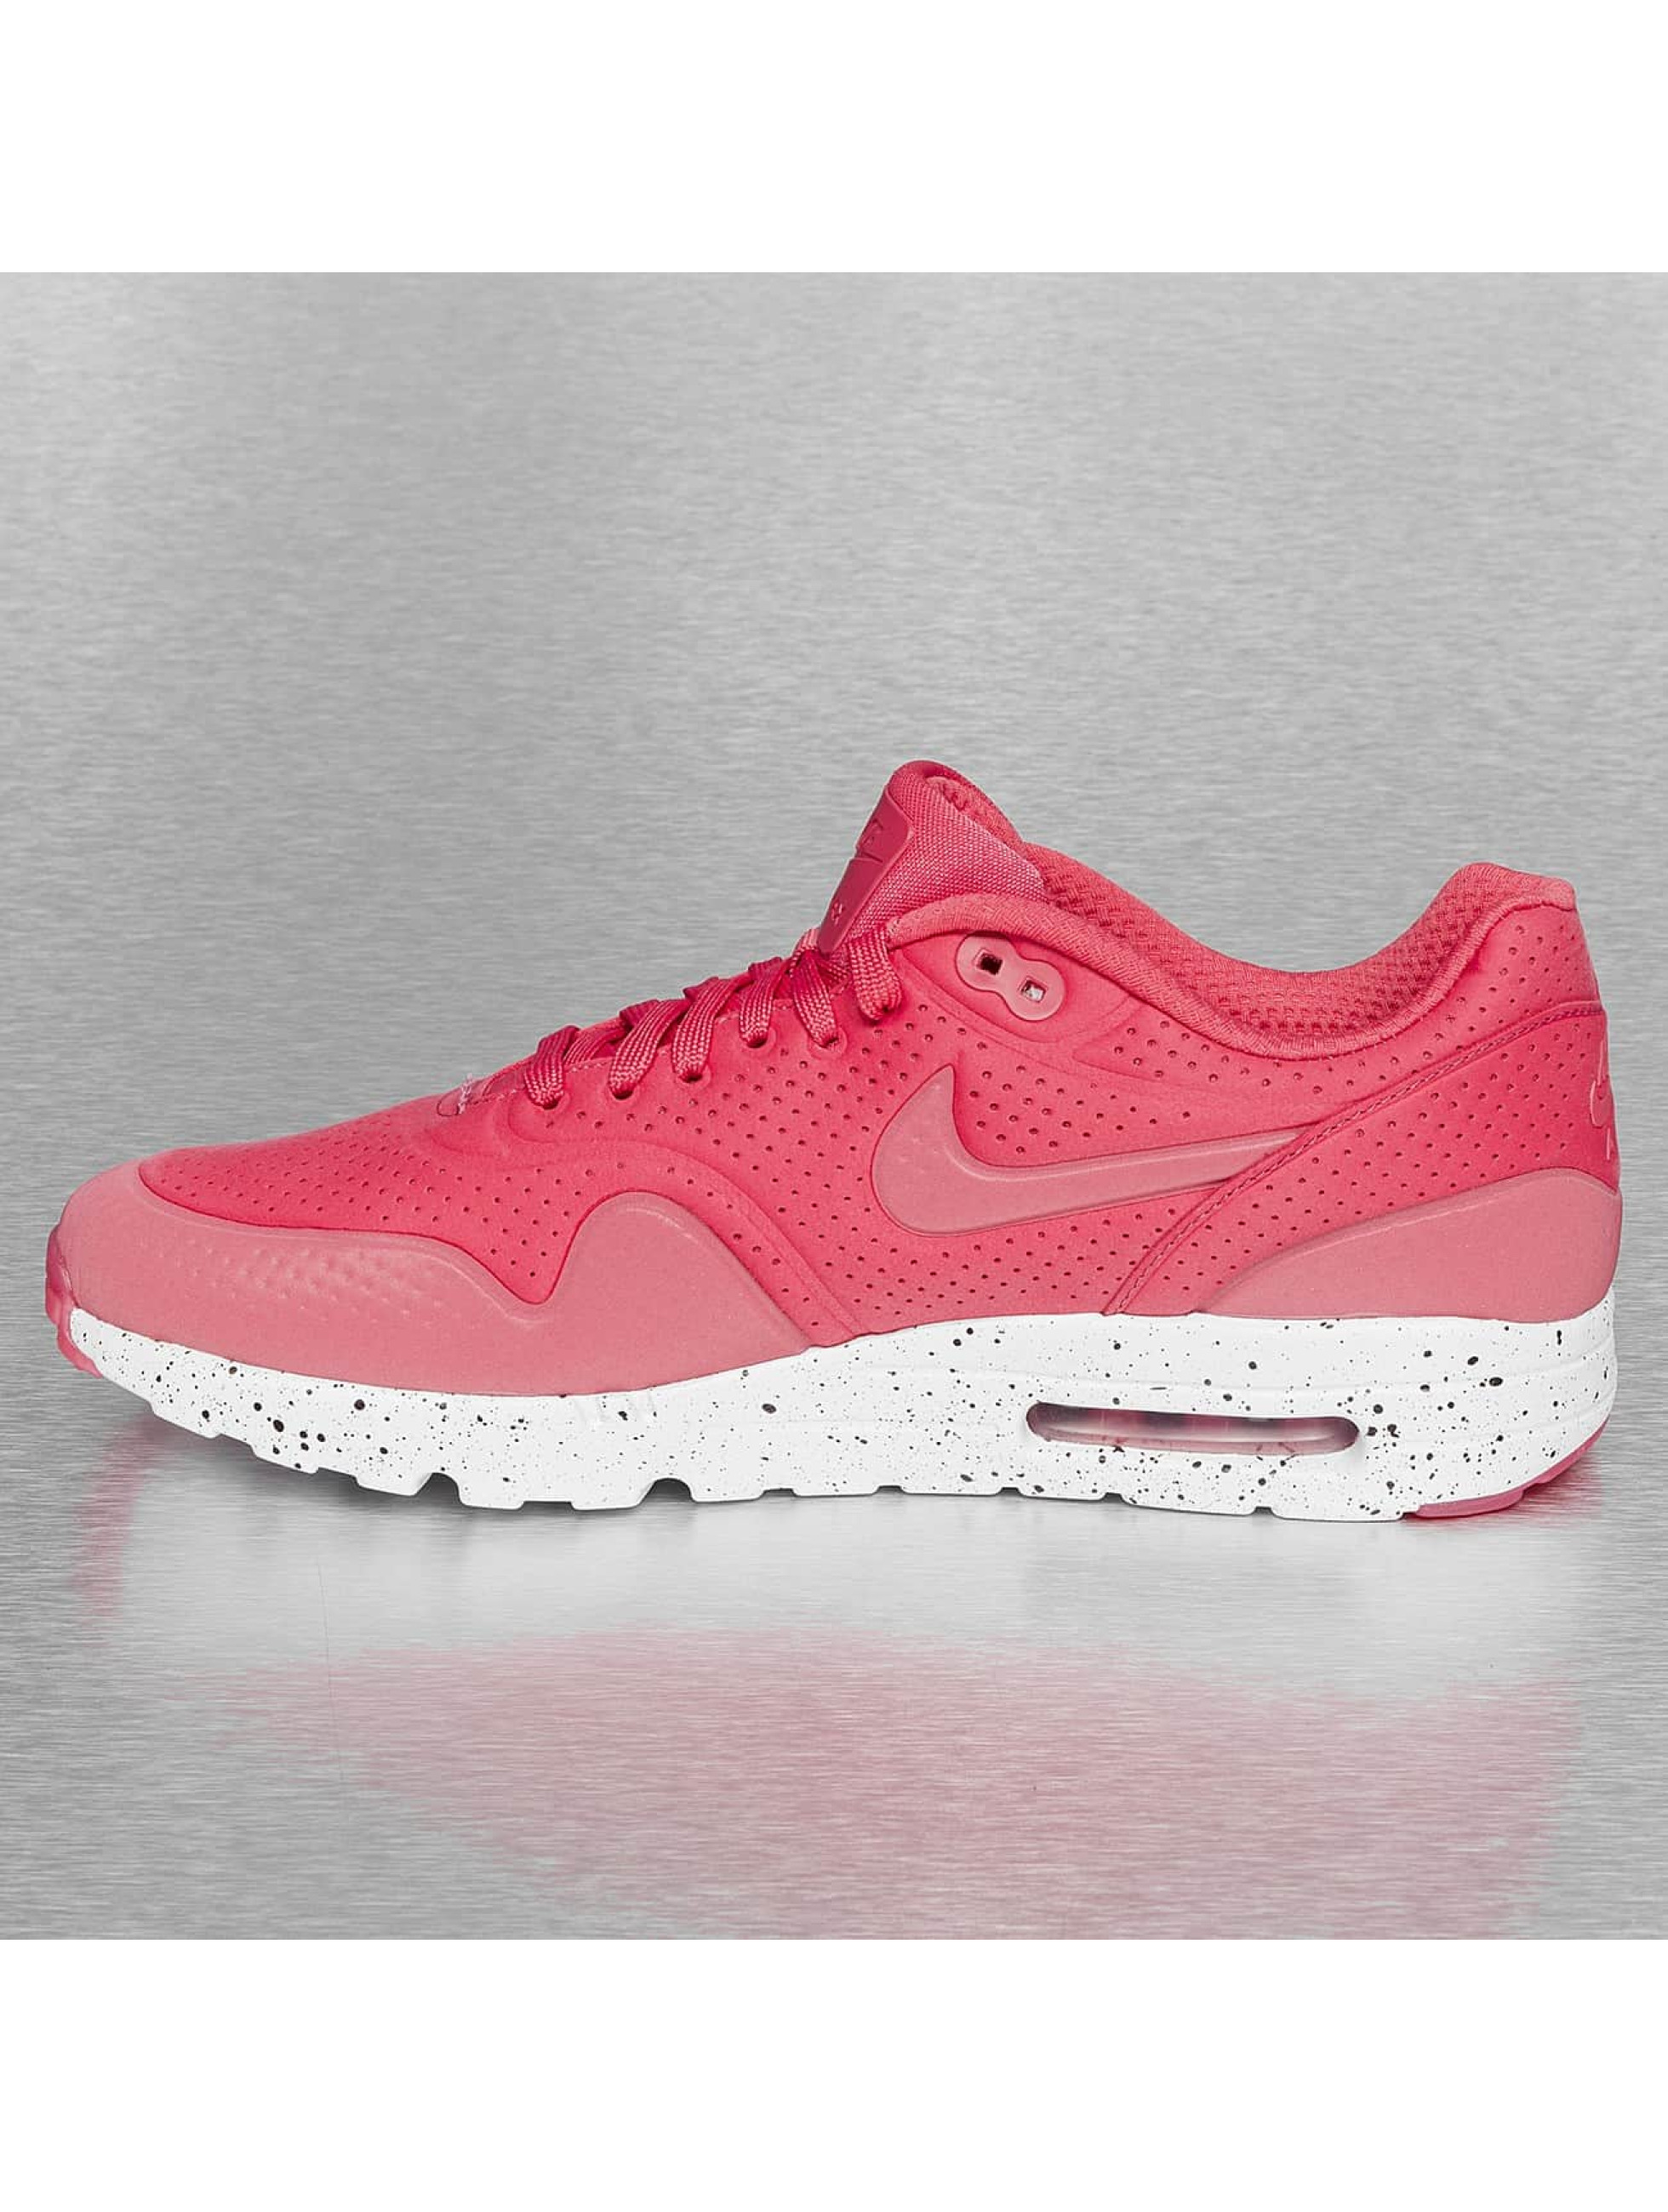 Air Max 90 Ultra Moire Iridescent norway air max 90 ultra moire iridescent for vendita cebdf d9139